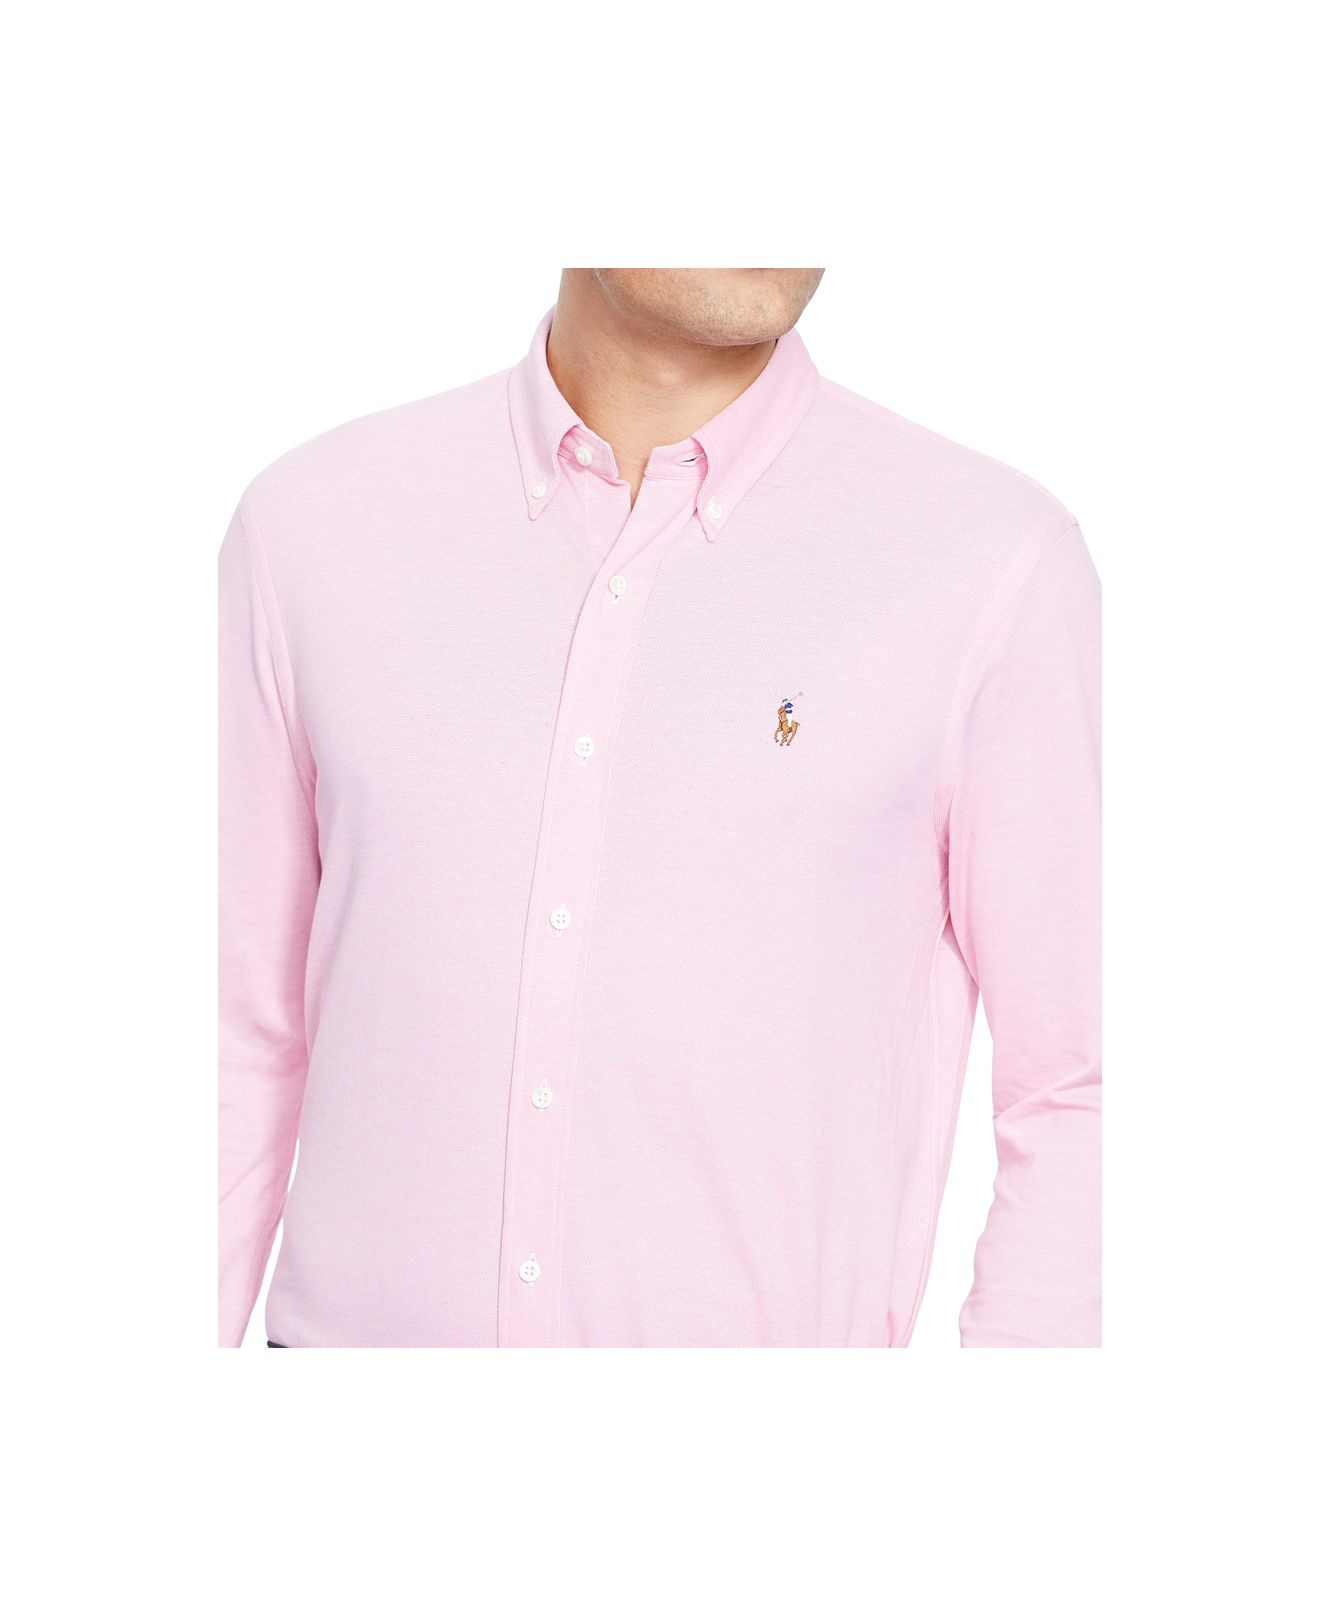 Polo ralph lauren big tall knit oxford shirt in pink for for Pink oxford shirt men